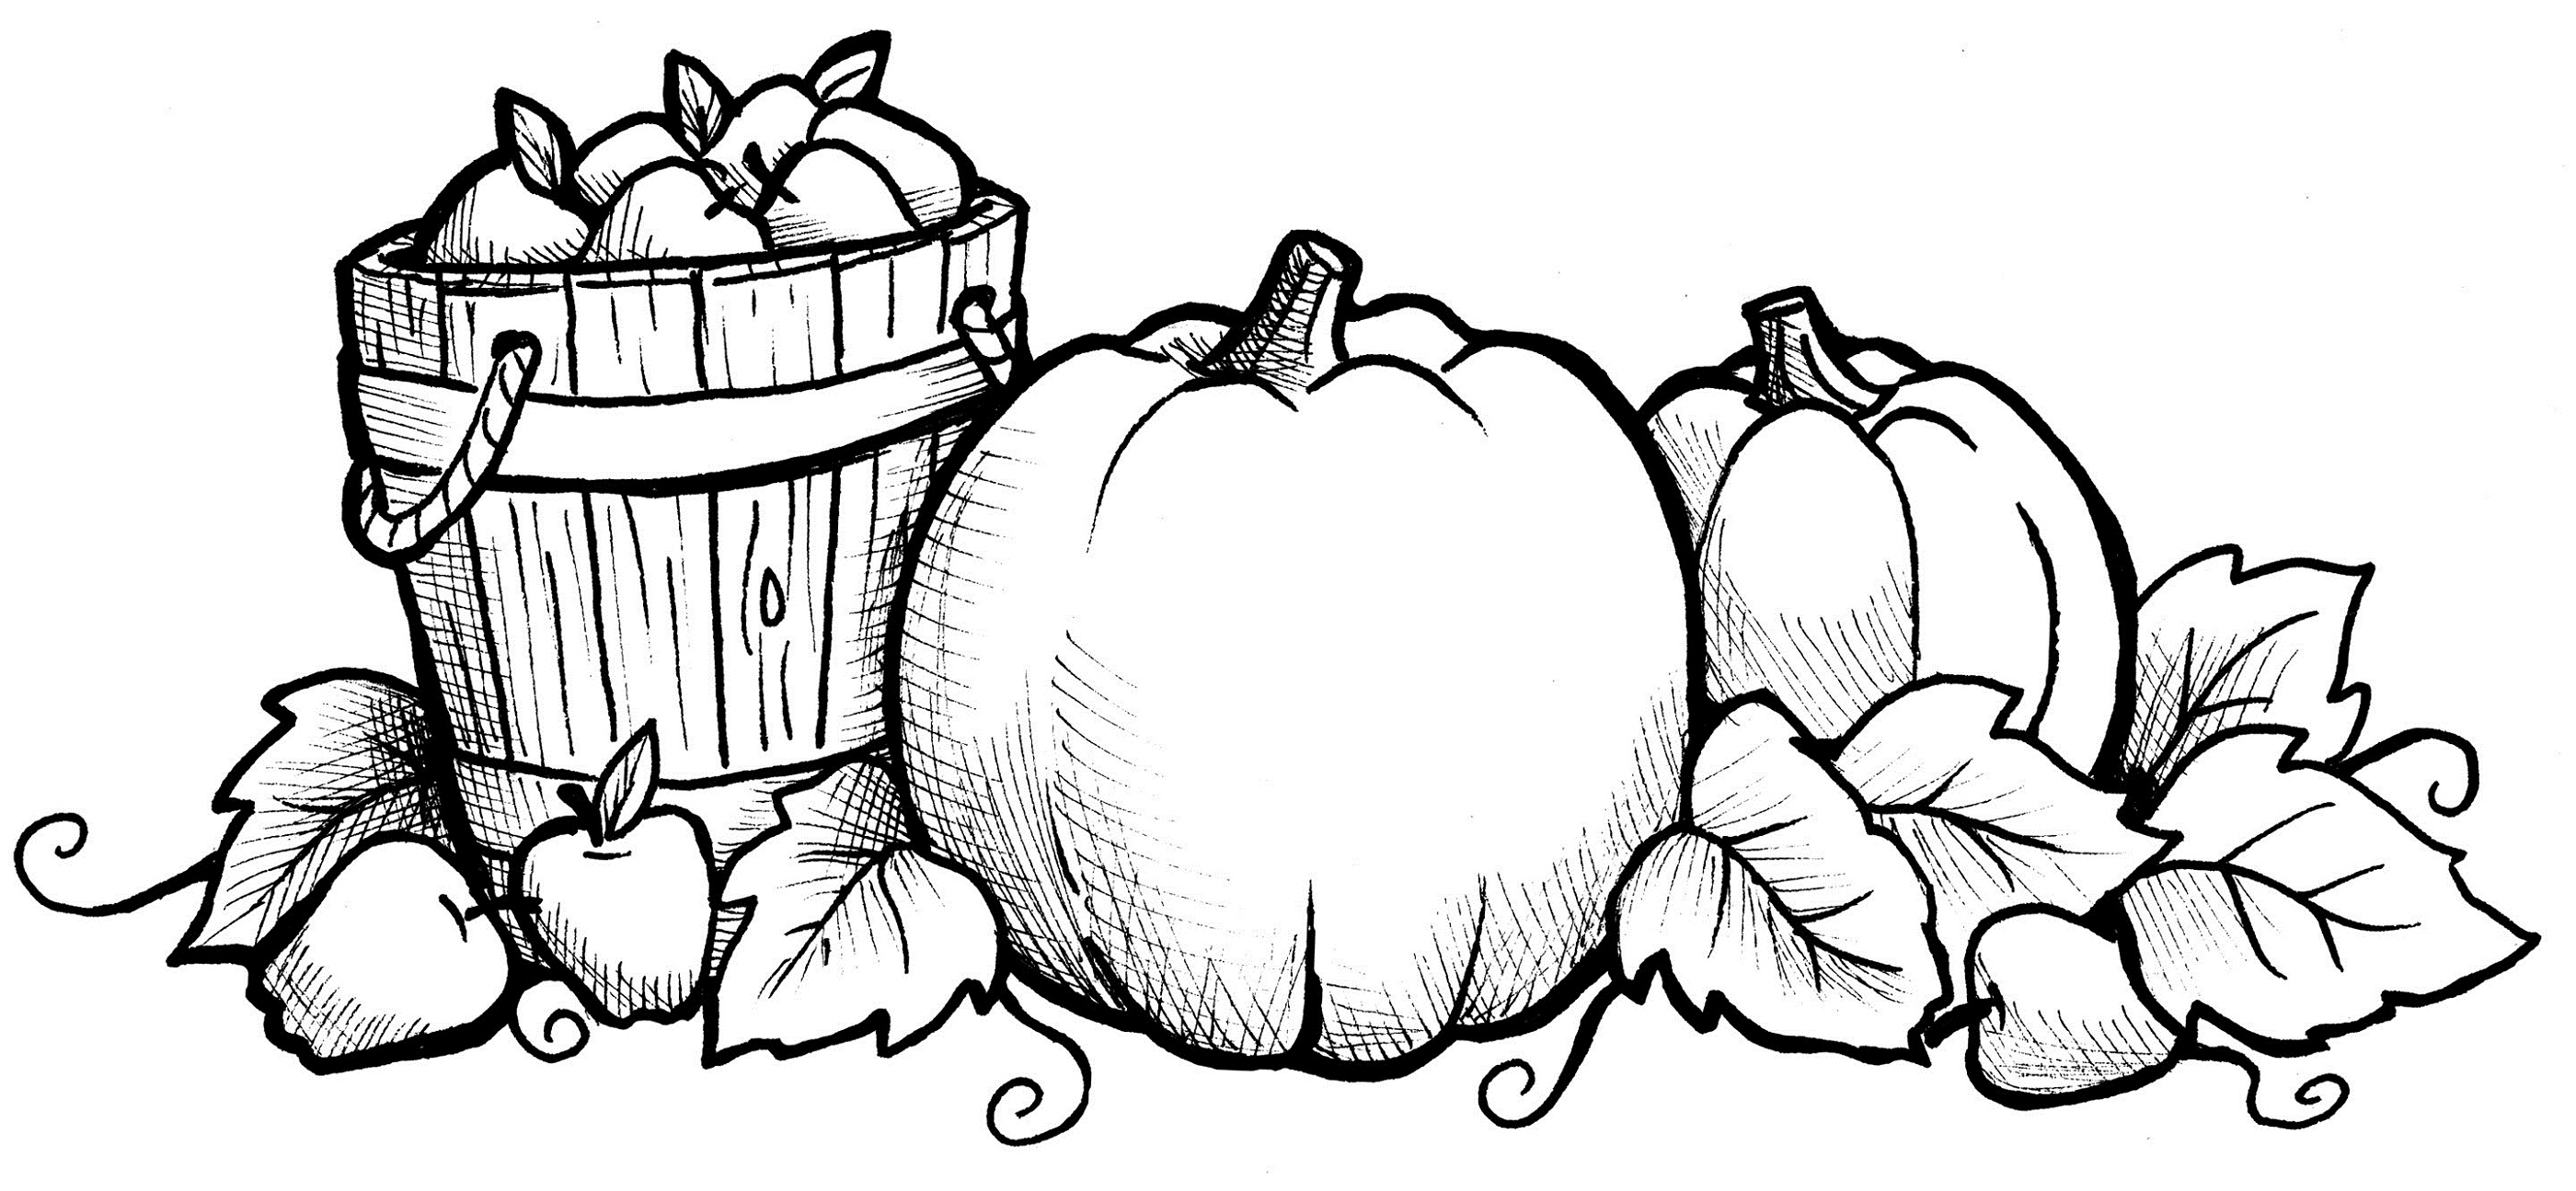 harvest coloring pages harvest crops in autumn season coloring page color luna harvest pages coloring